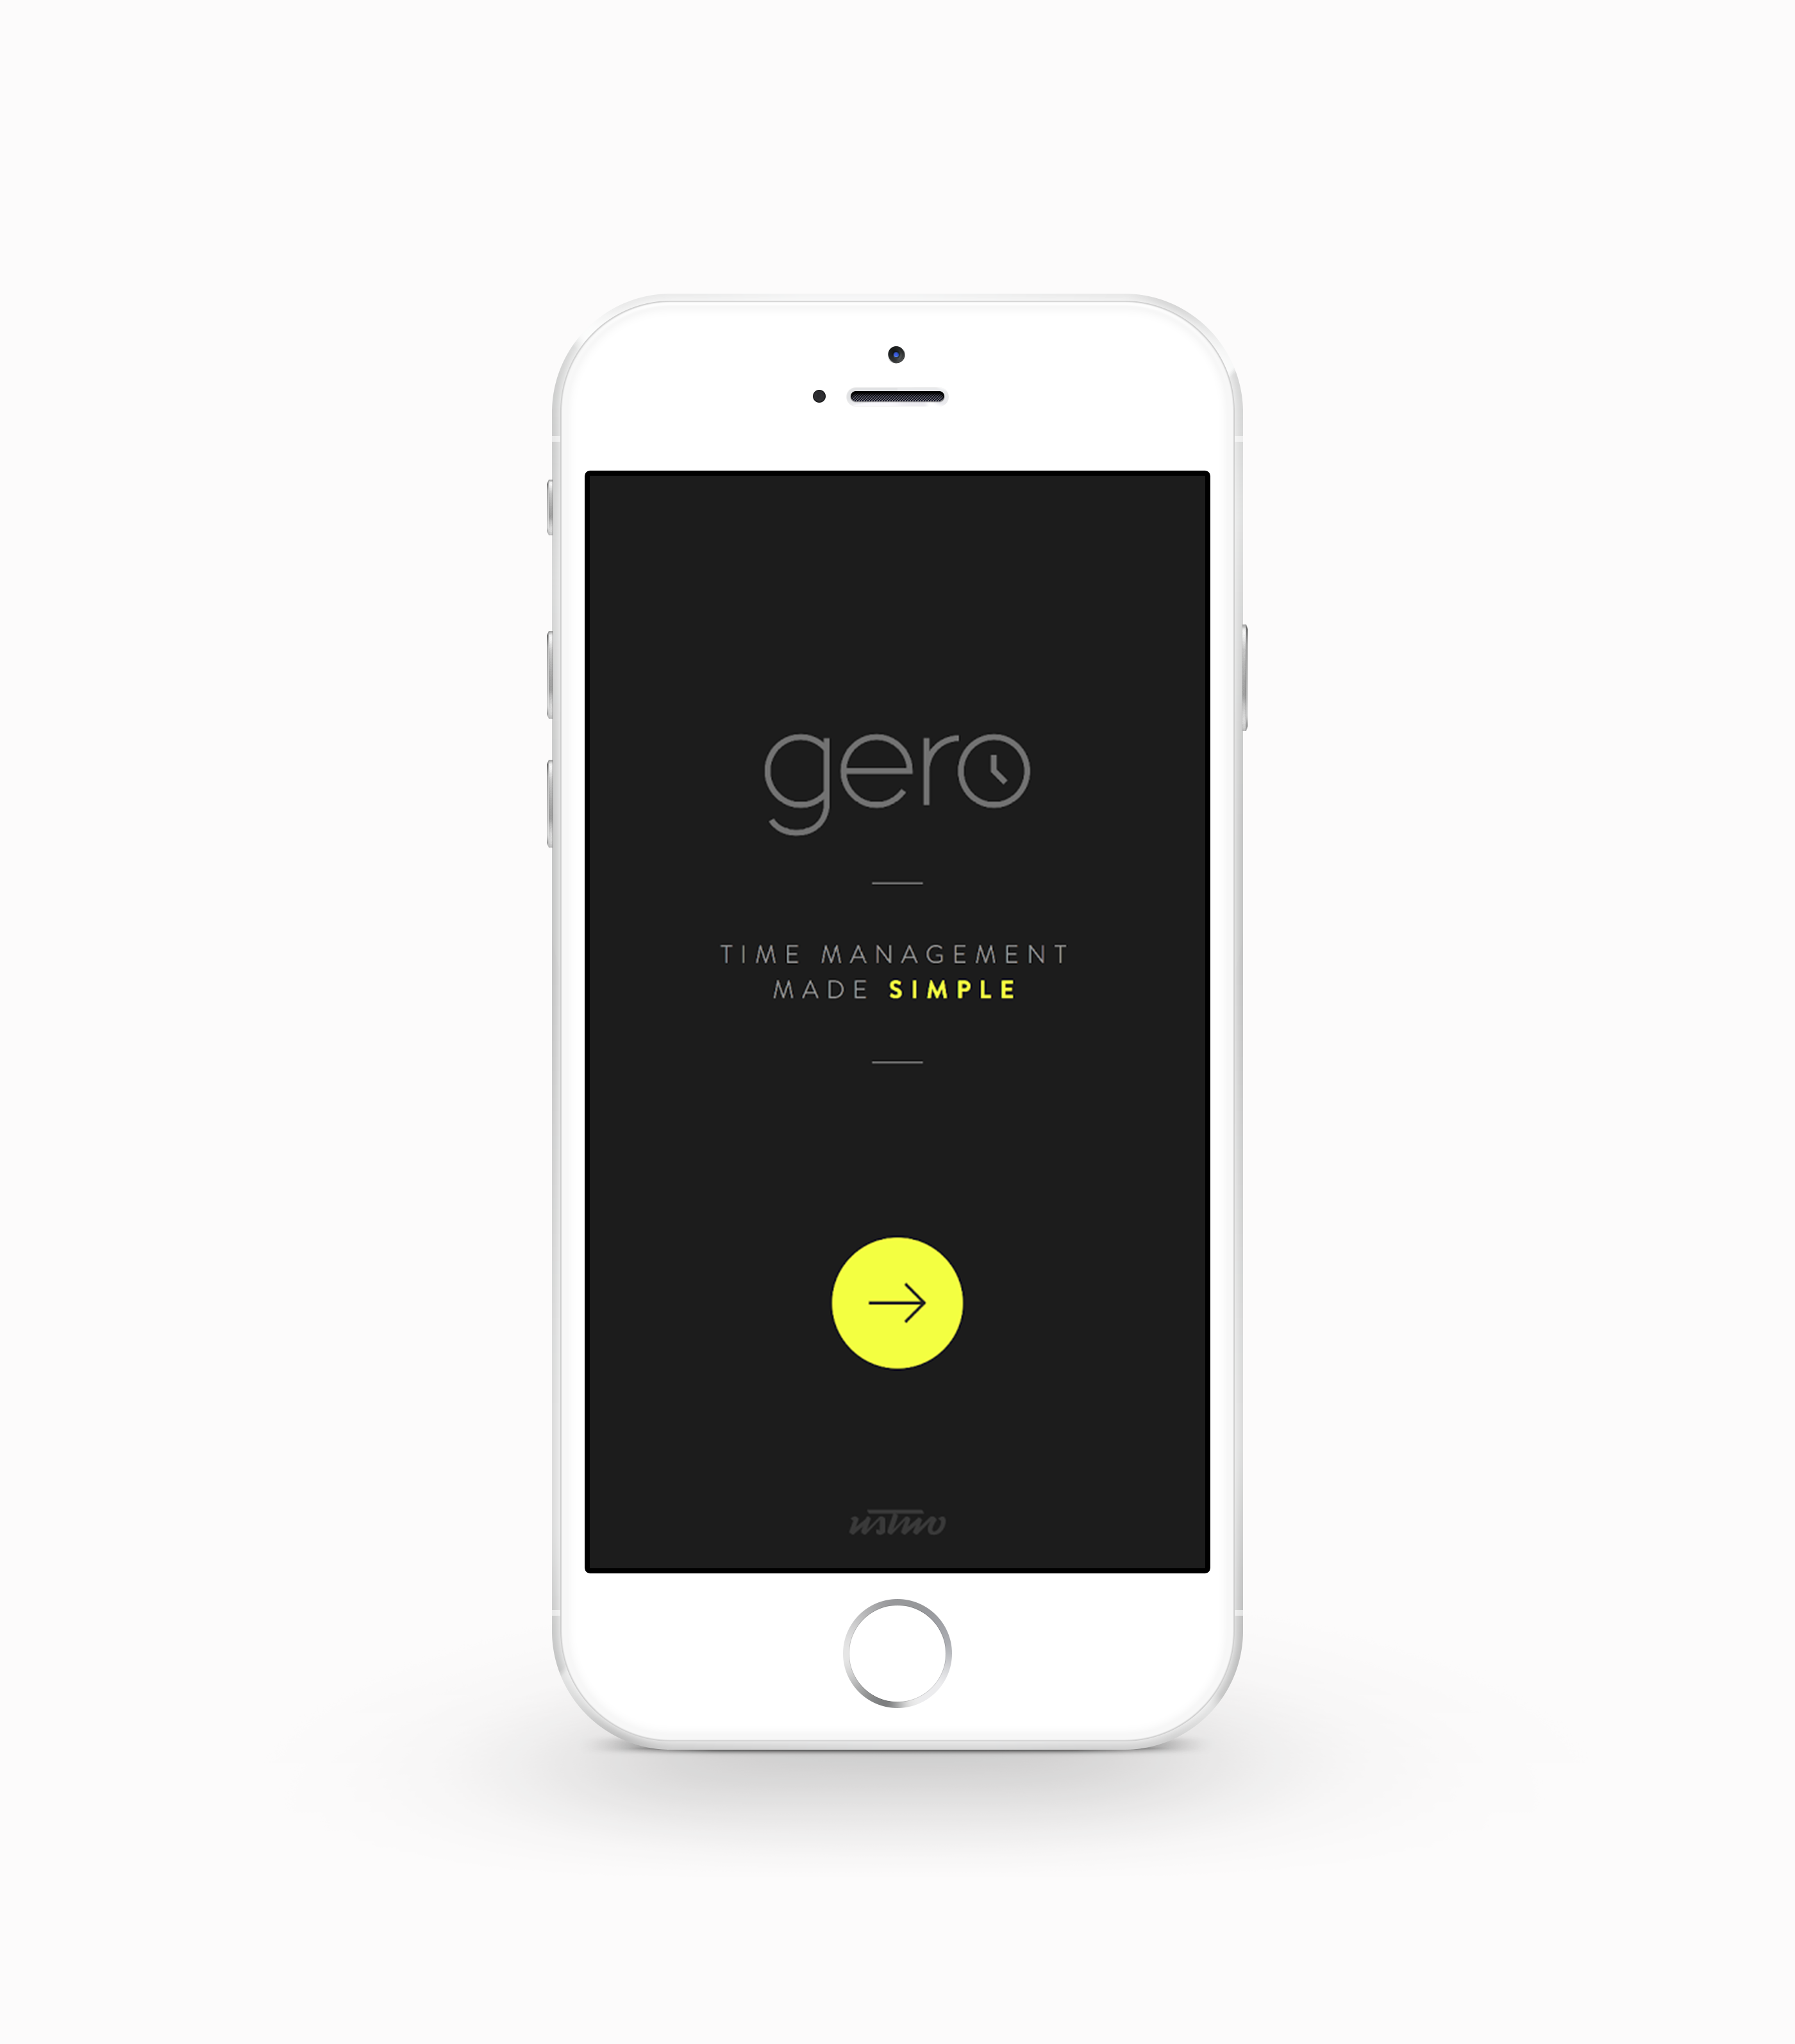 gero iphone 1